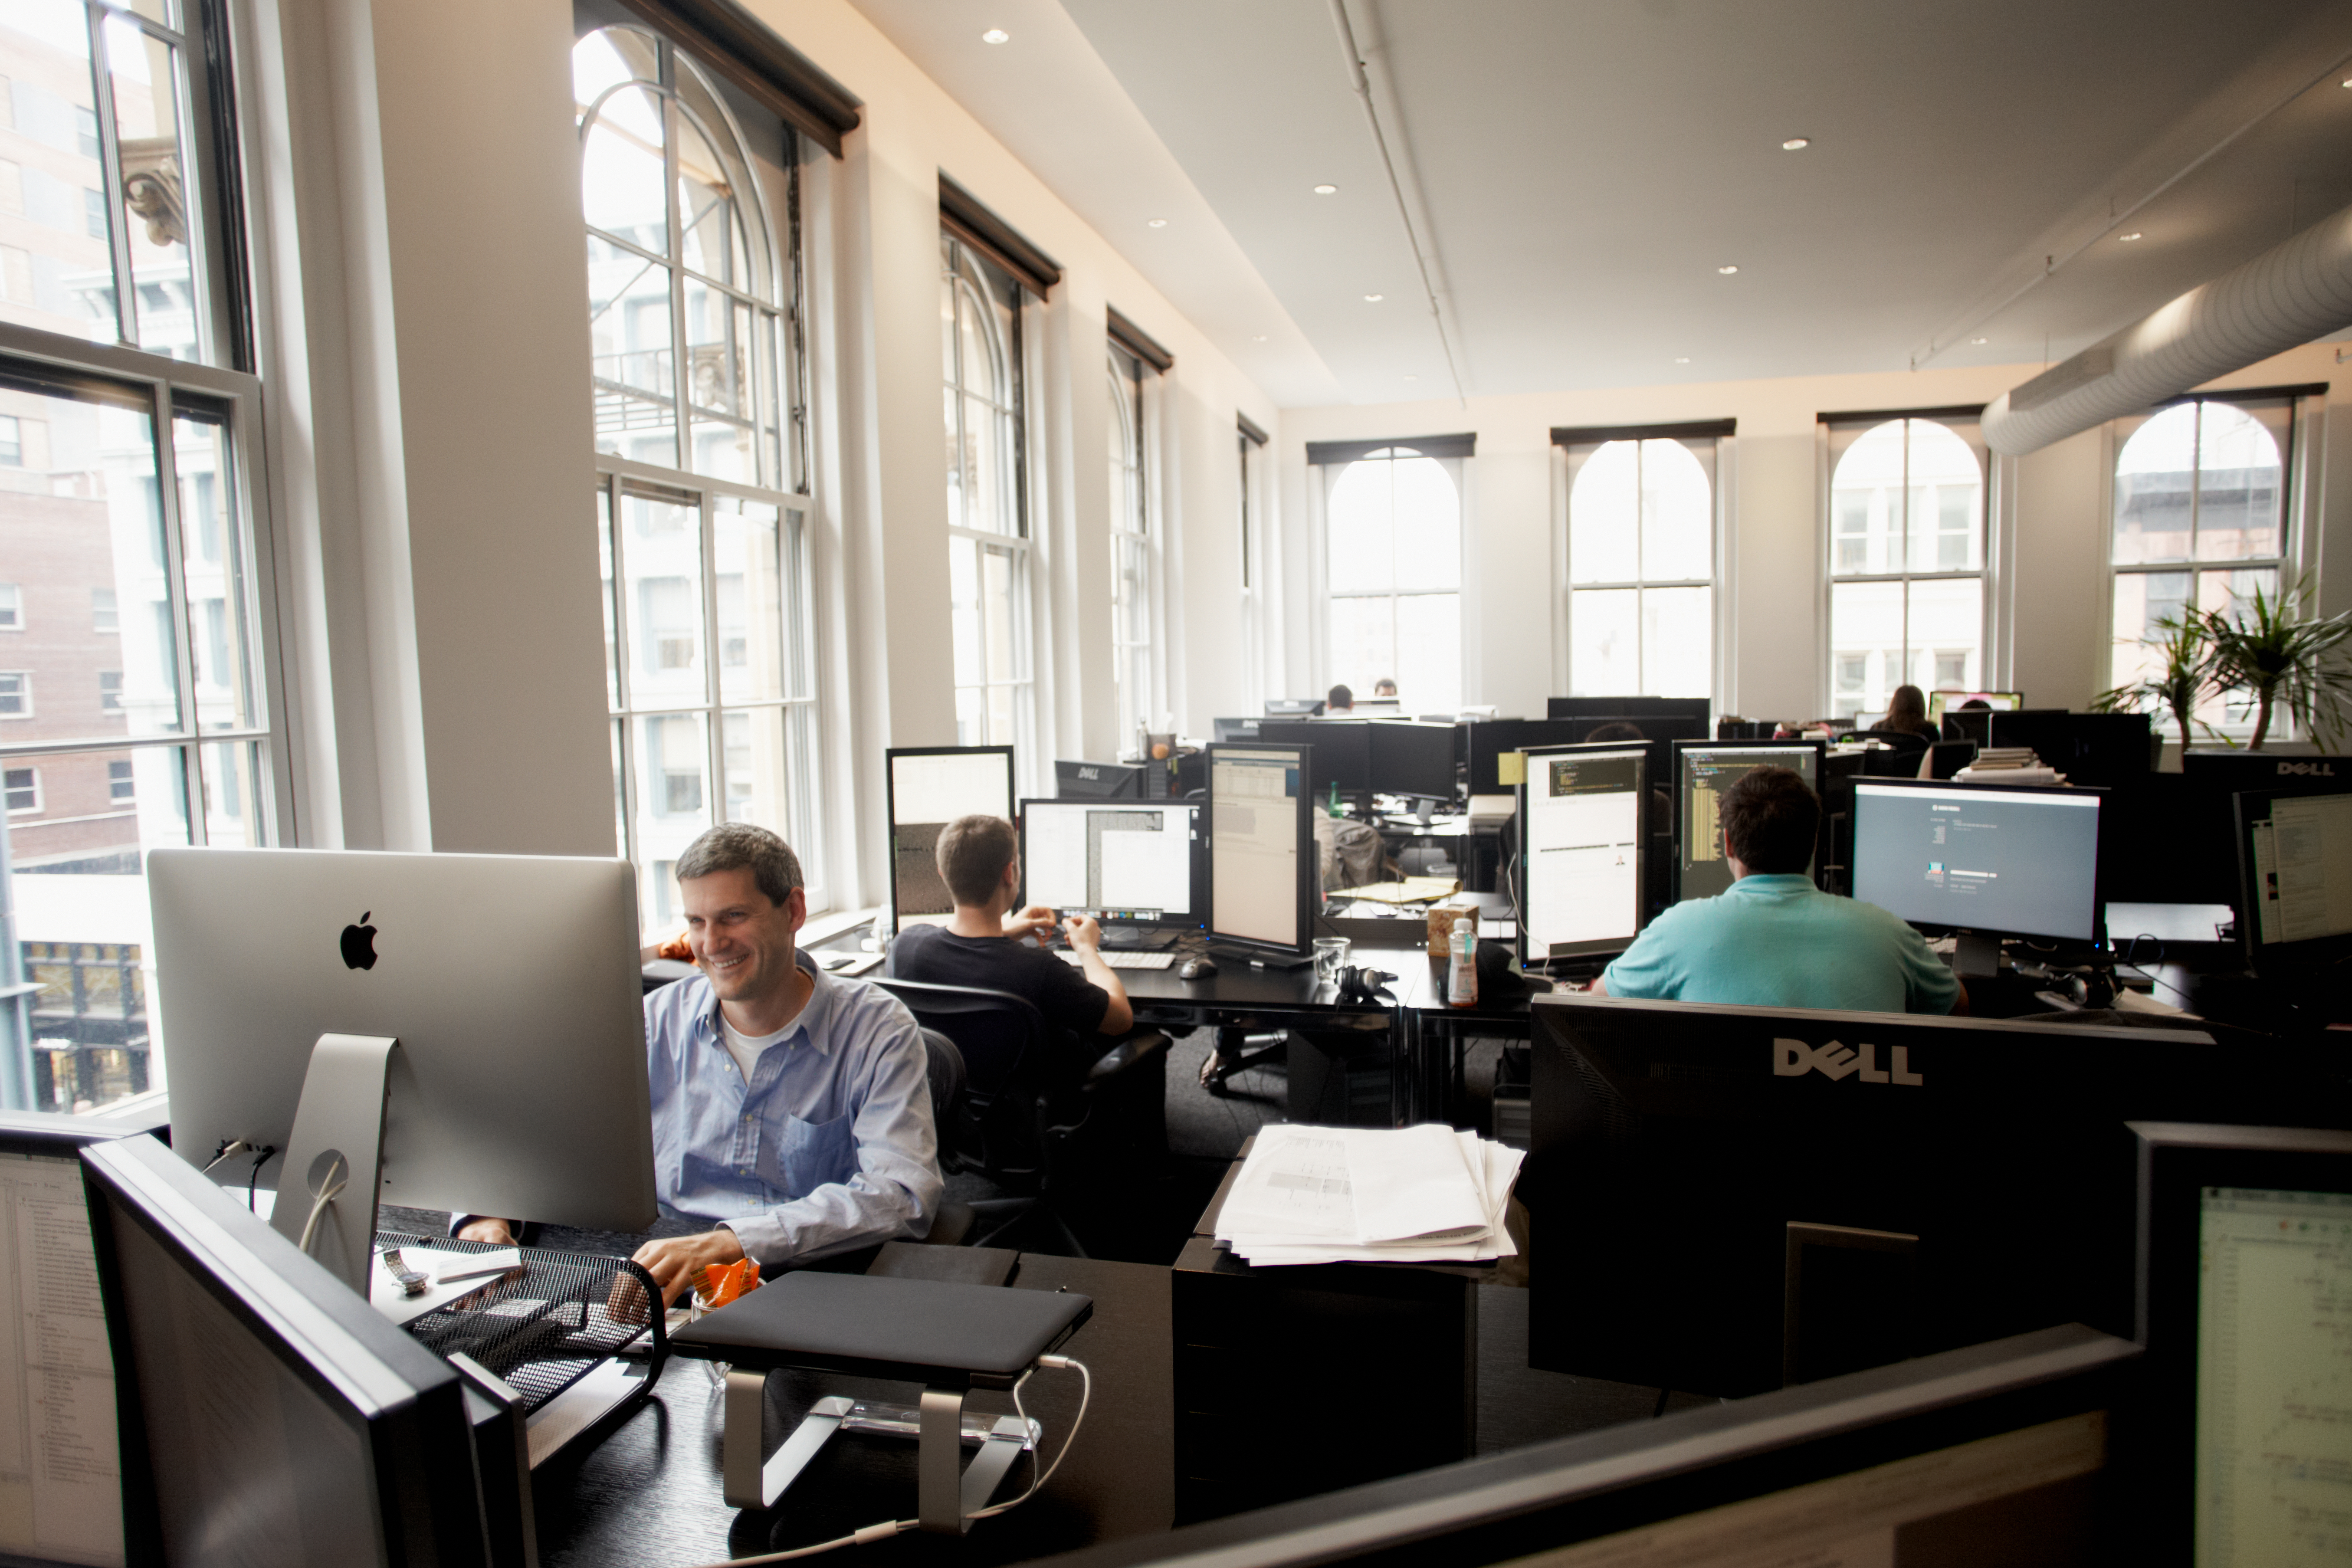 Don 39 t forget about website runner squarespace it just raised 40m venturebeat - Squarespace dublin office ...